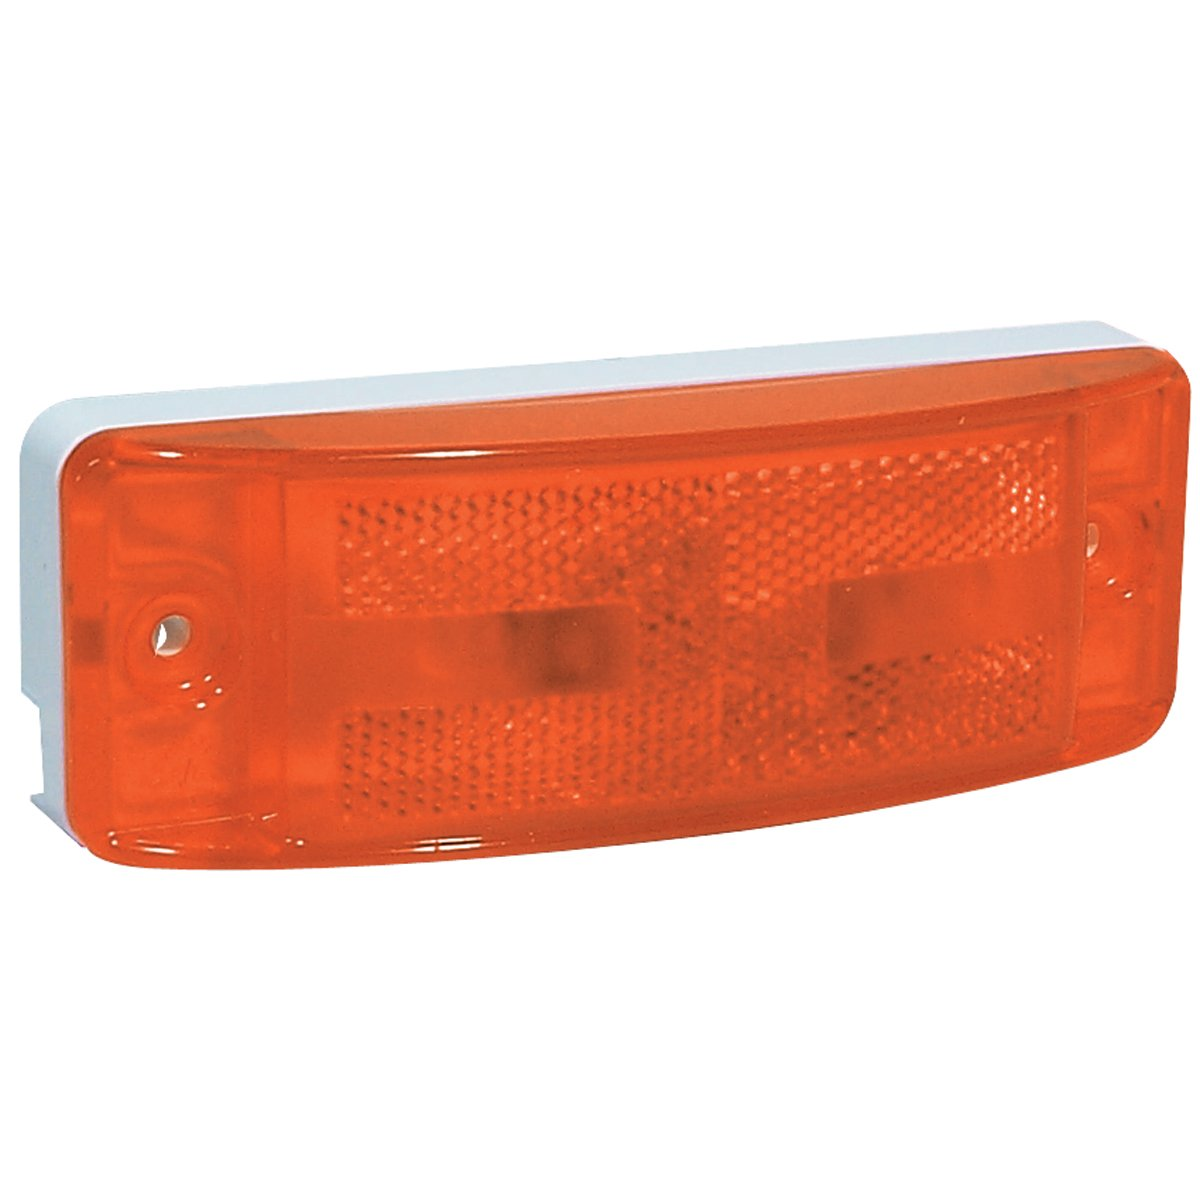 RoadPro RP-46873 Amber 6 x 2 Light with 2-Prong Grote Connector